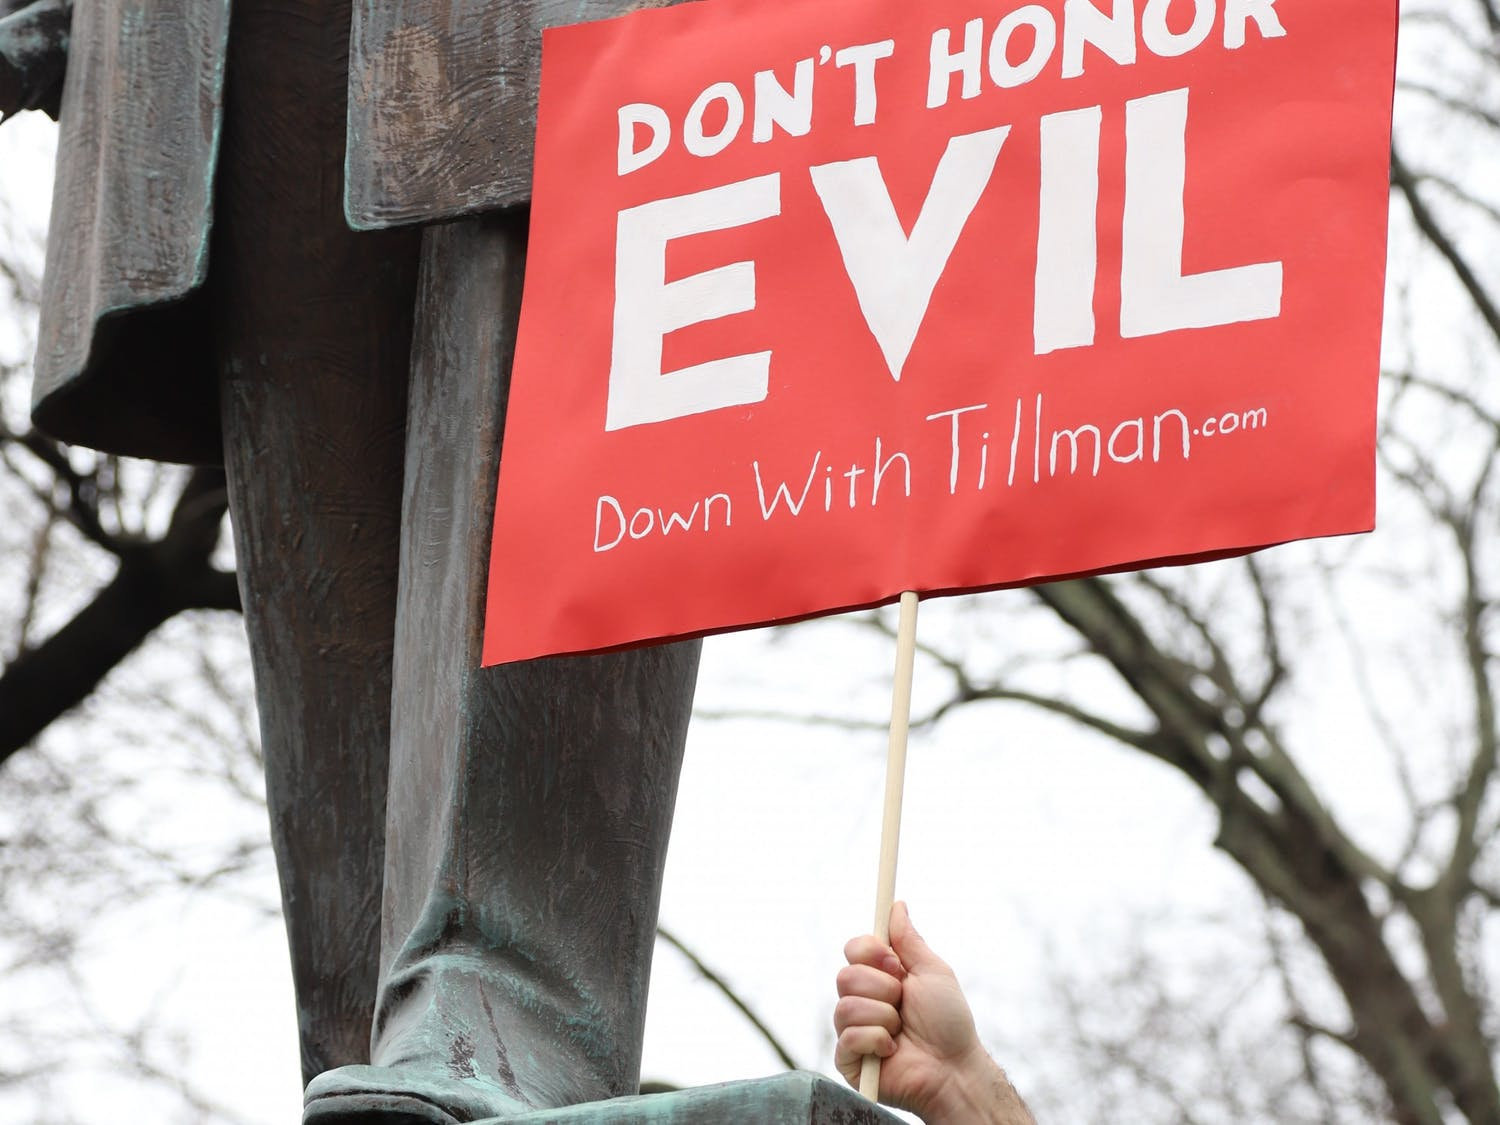 """A protestor holds  a sign that says  """"DON'T HONOR EVIL, Down with Tillman"""" in front of the Benjamin Tillman statue on Tuesday January 12, 2021."""